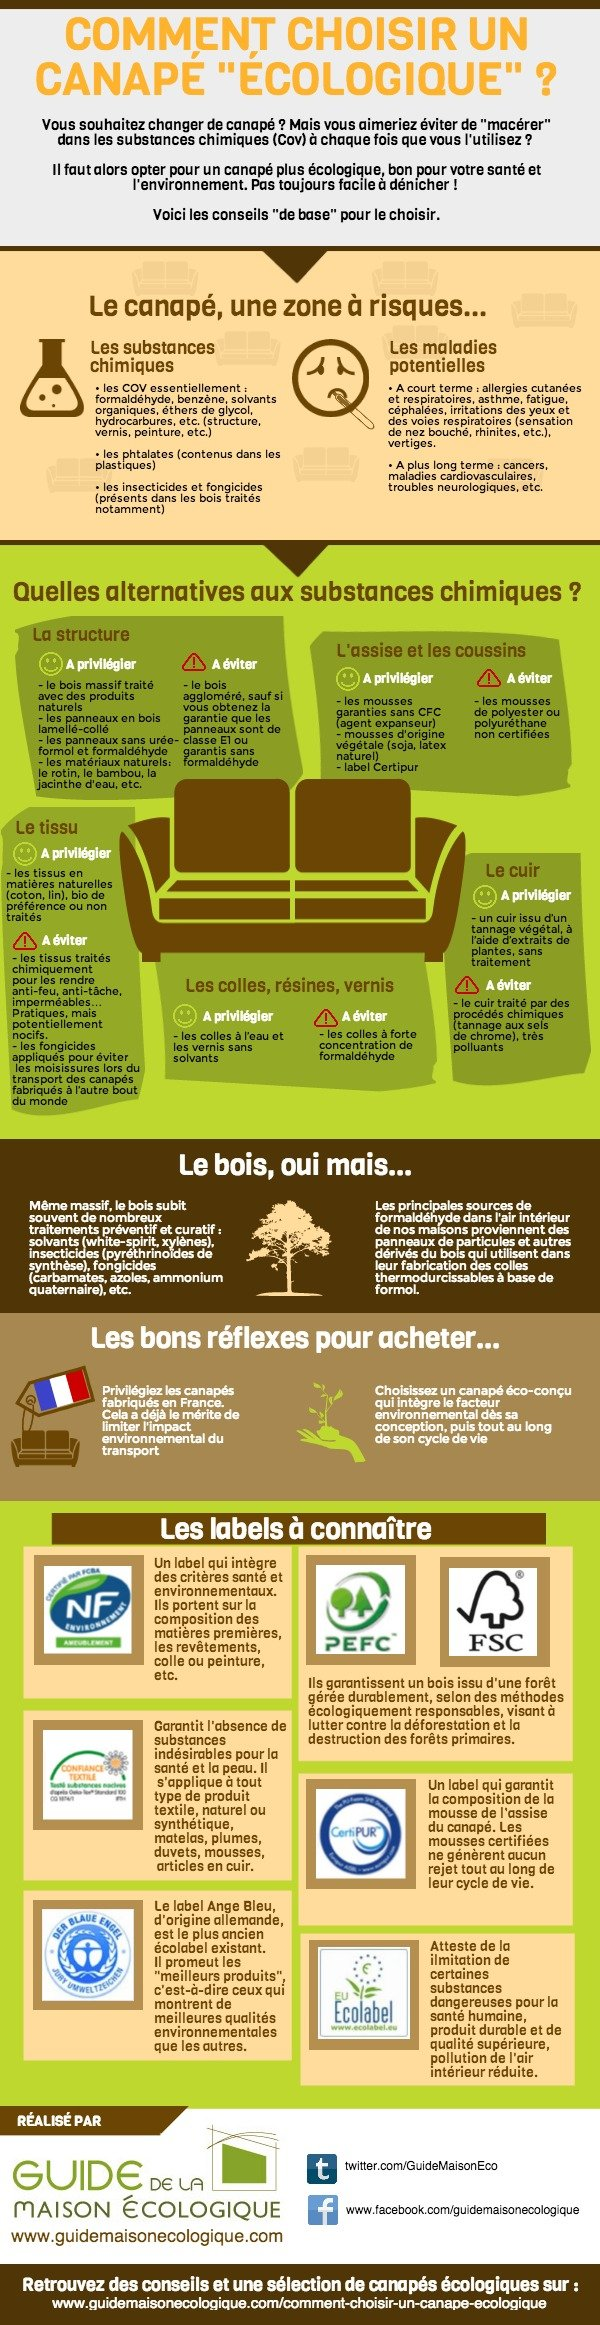 infographie comment choisir un canap cologique. Black Bedroom Furniture Sets. Home Design Ideas